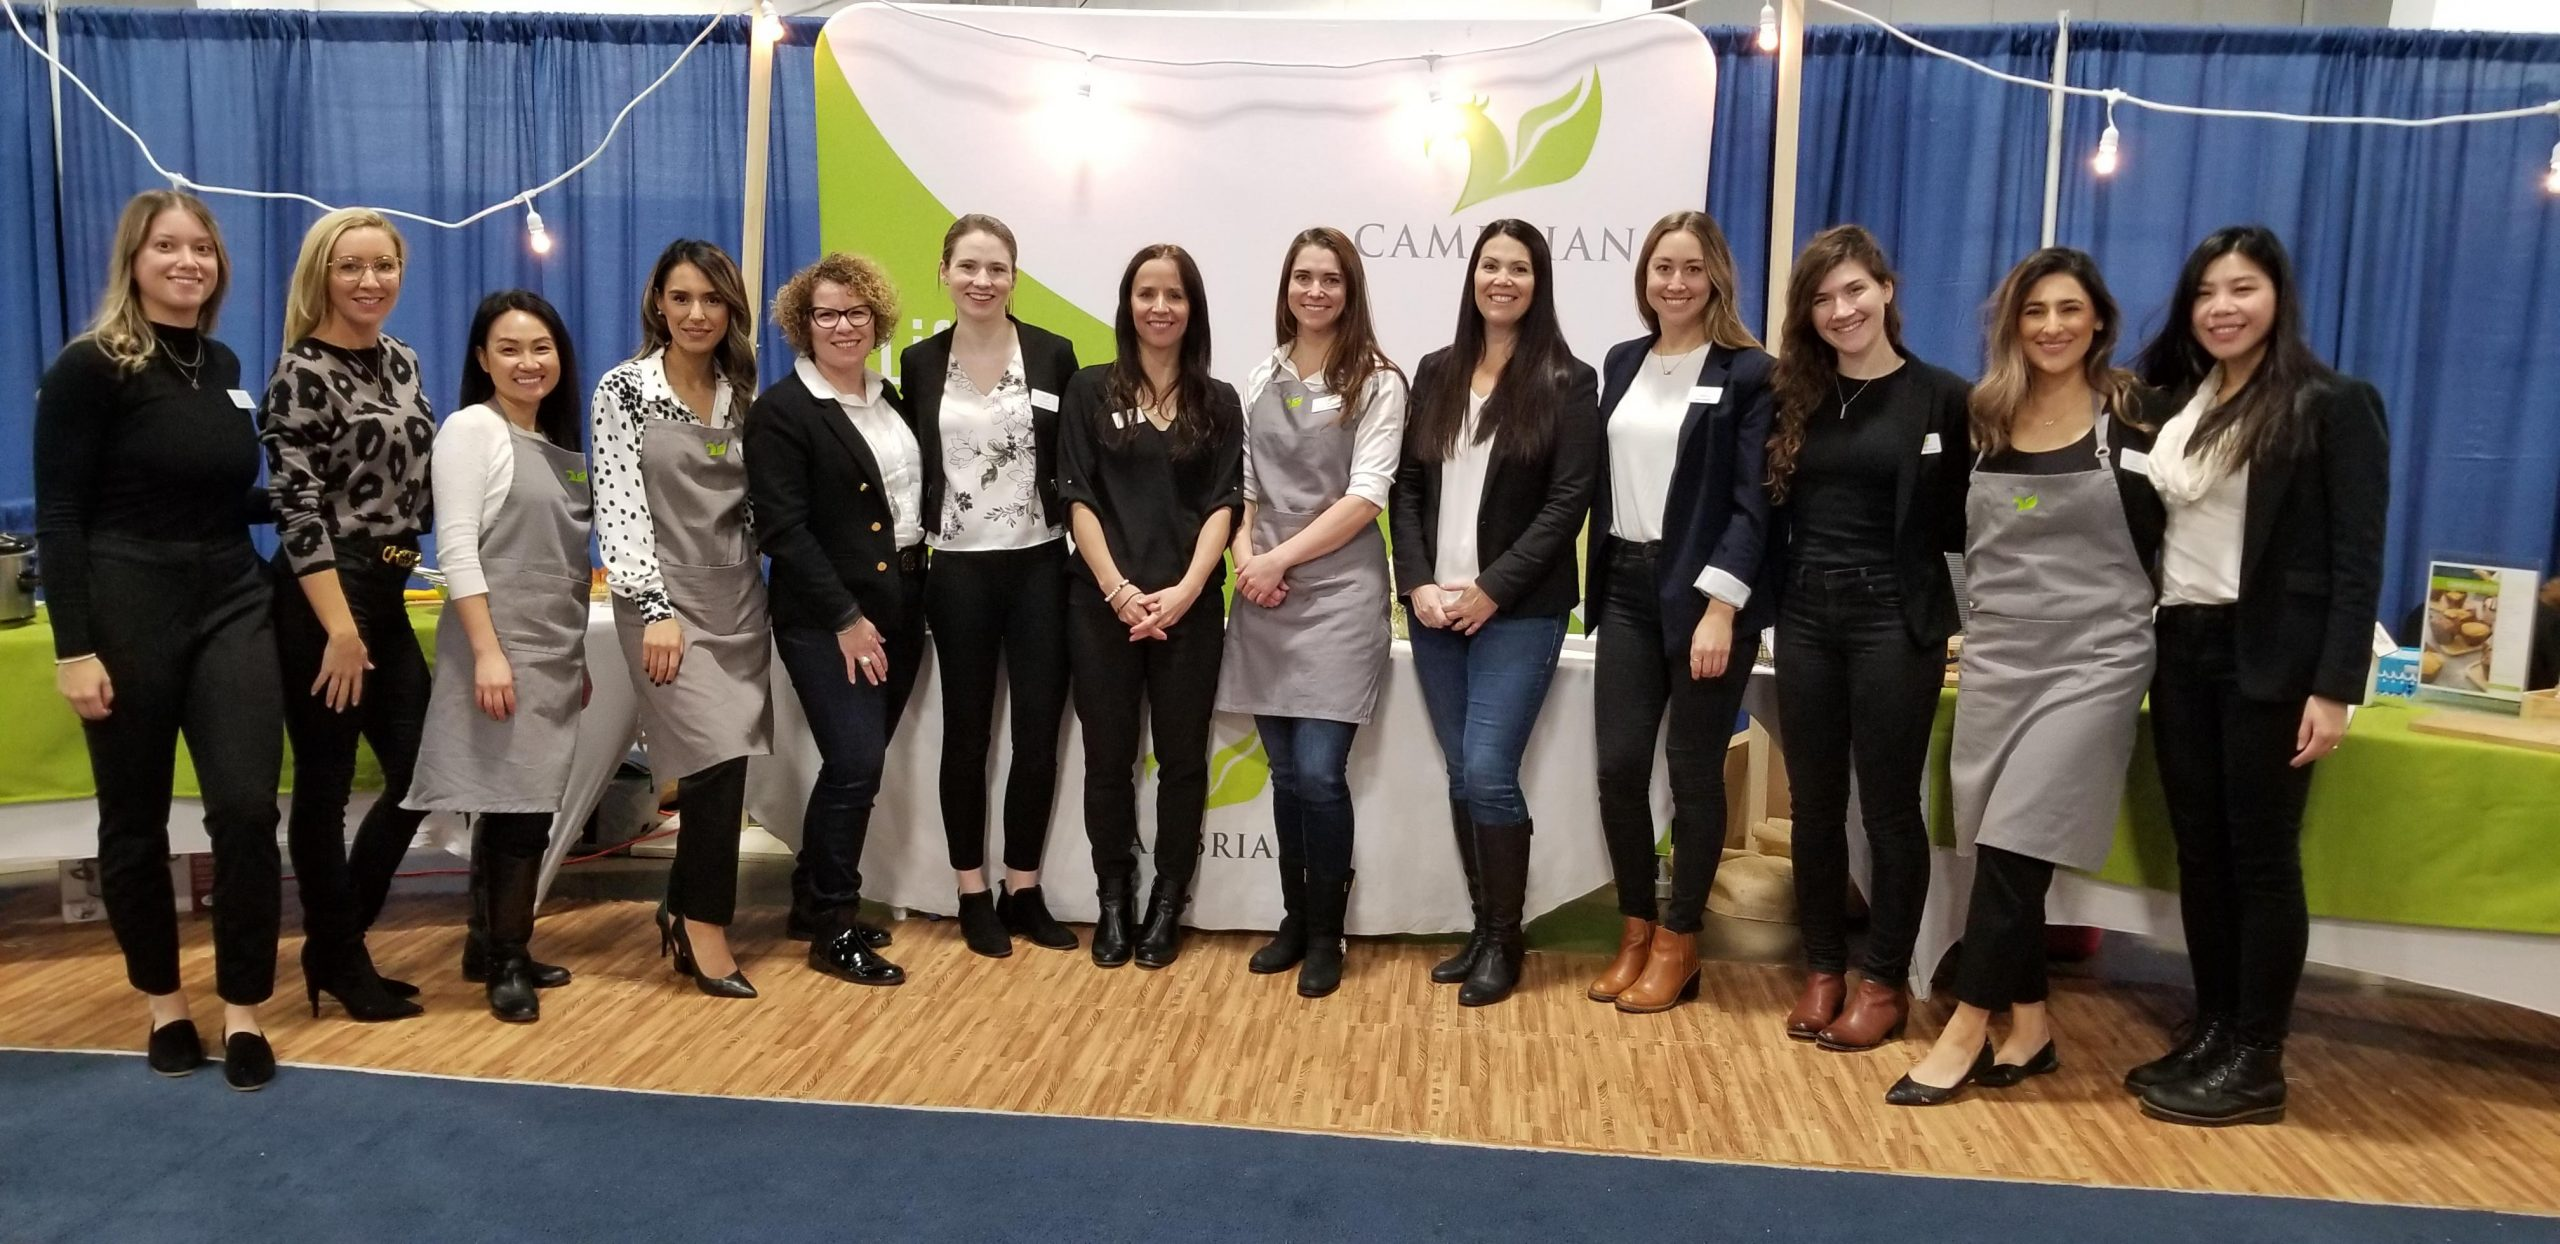 A group of 13women stand, smiling, in front of a Cambrian trade show booth. Most are wearing black blazers, four are wearing grey aprons.